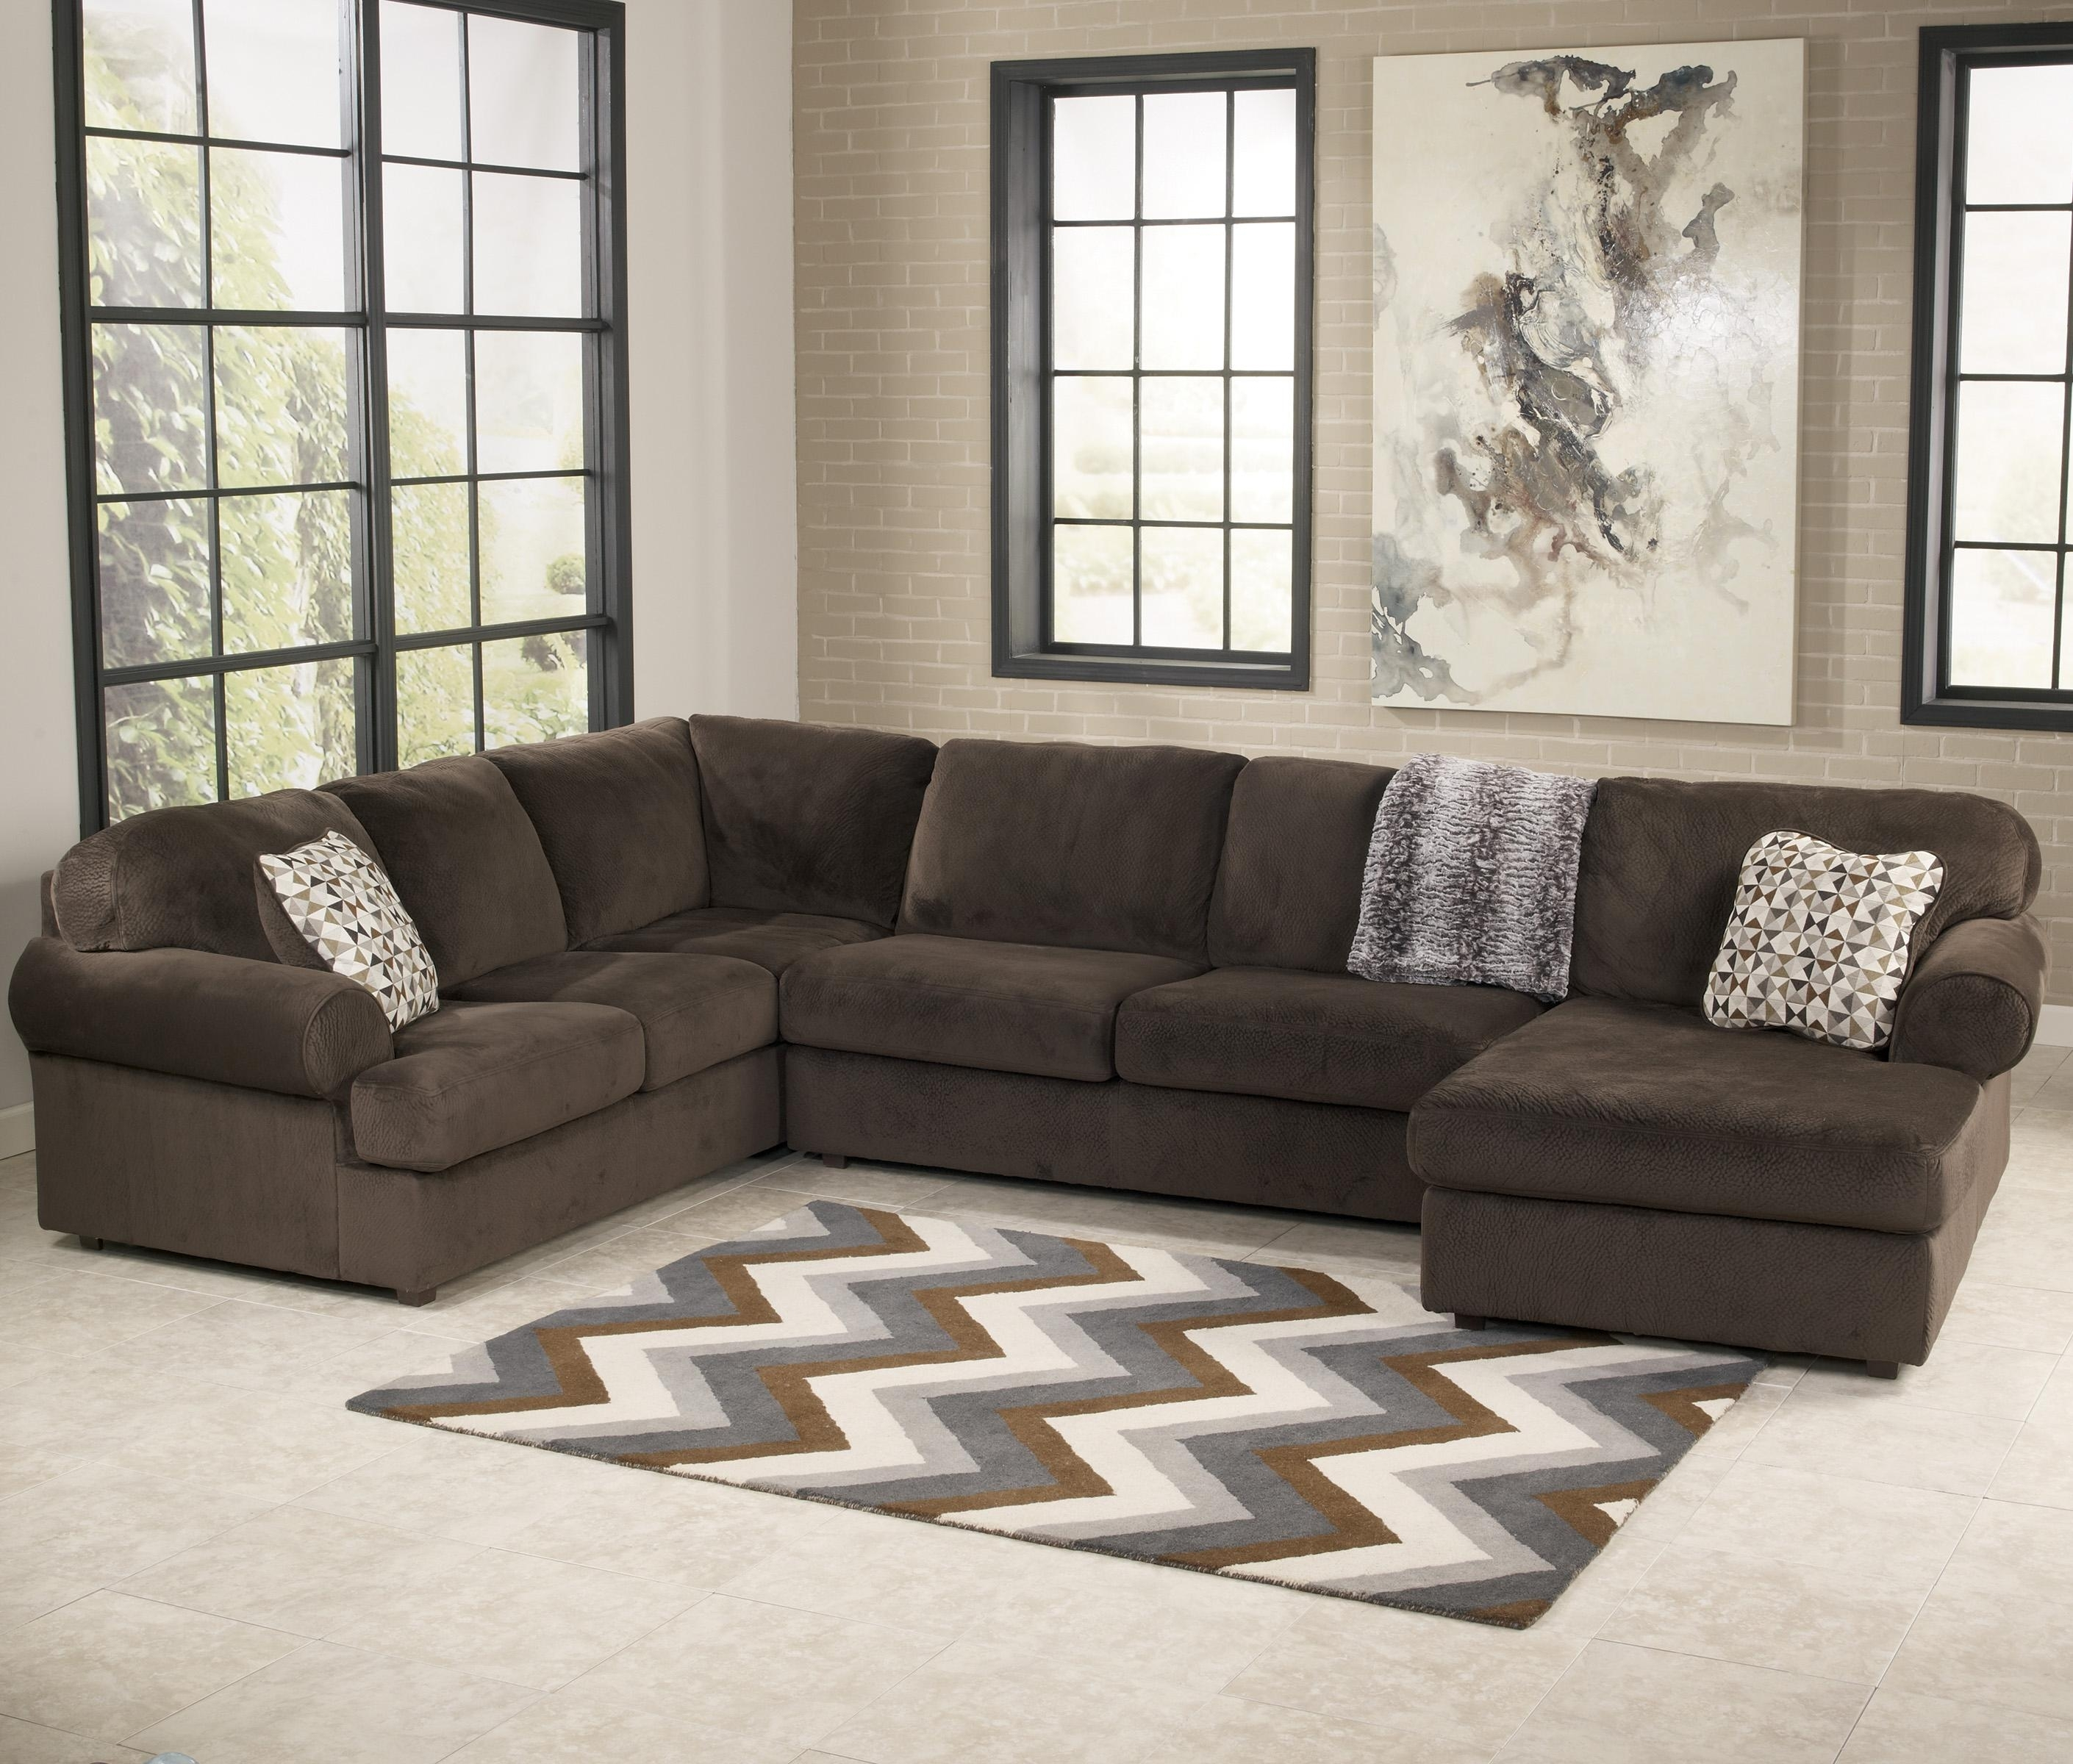 Signature Designashley Jessa Place – Chocolate Casual Sectional In Clarksville Tn Sectional Sofas (View 7 of 10)